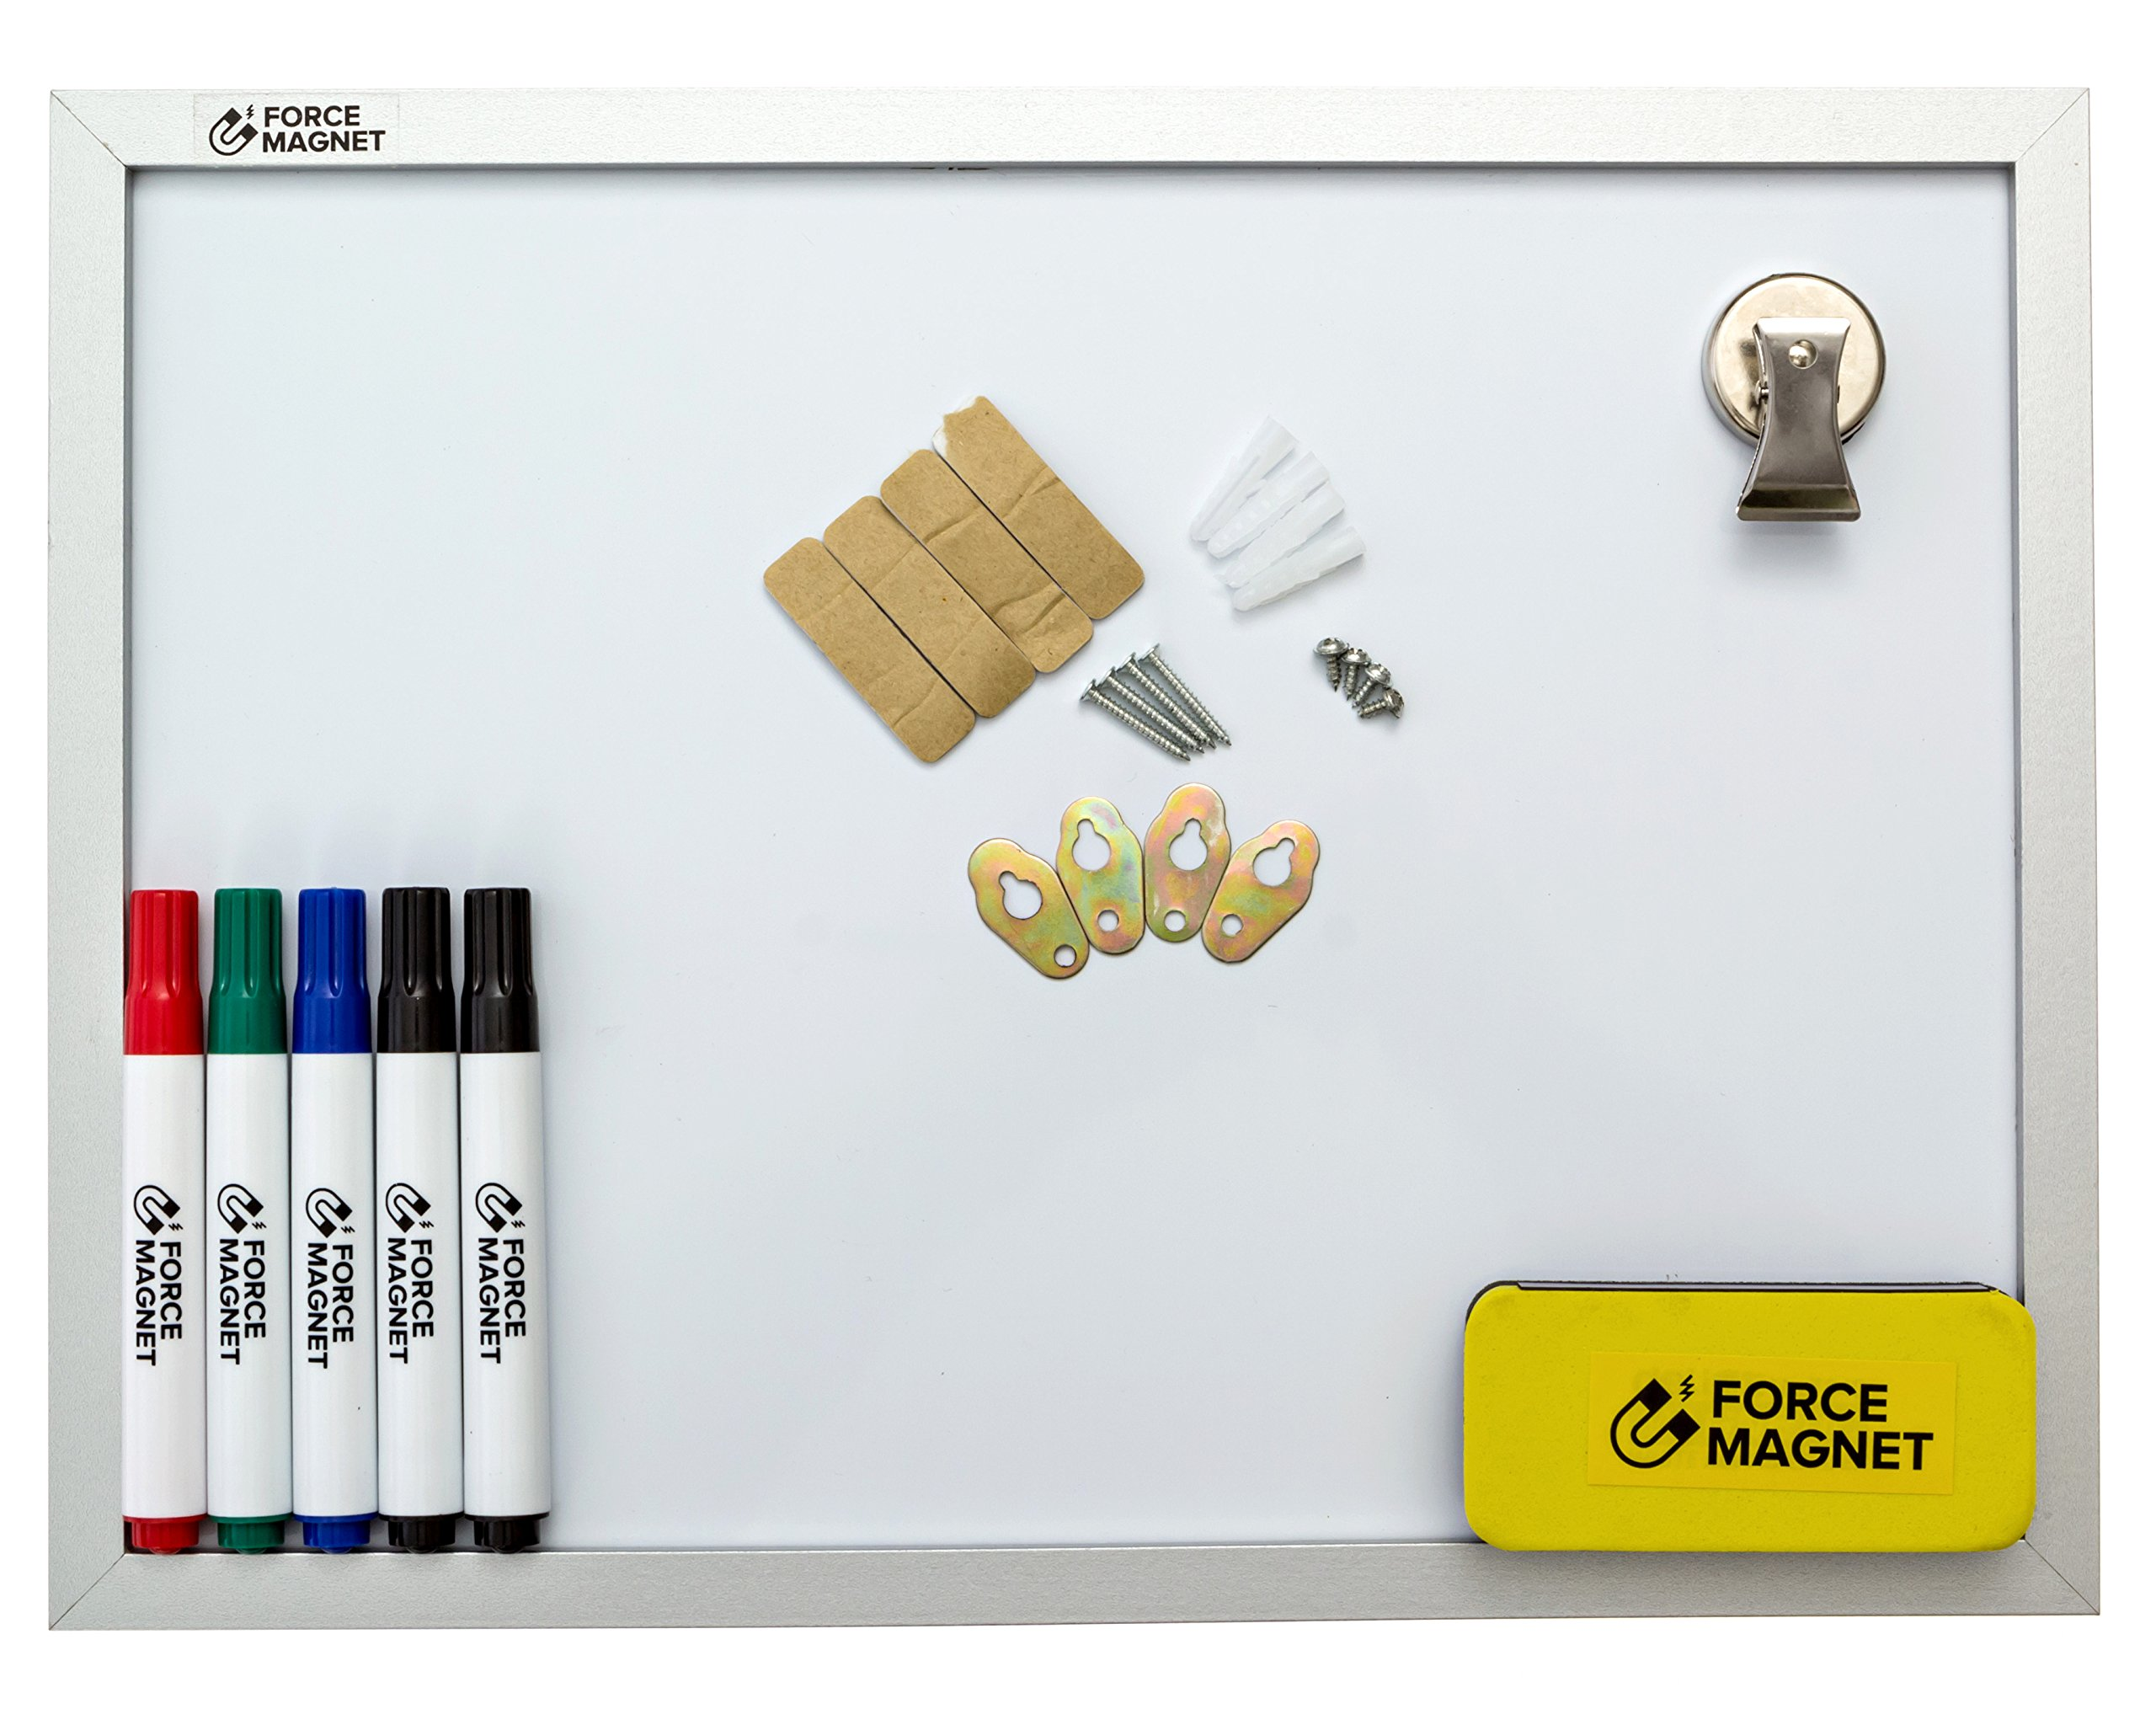 Magnetic 12 x 16'' Dry Erase Whiteboard. Includes 5 Dry Erase Markers, Assorted Colors.Magnetic Eraser Great for Fridge, Locker, and More 10 Seconds Super Easy Mounting System by FORCE MAGNET (Image #7)